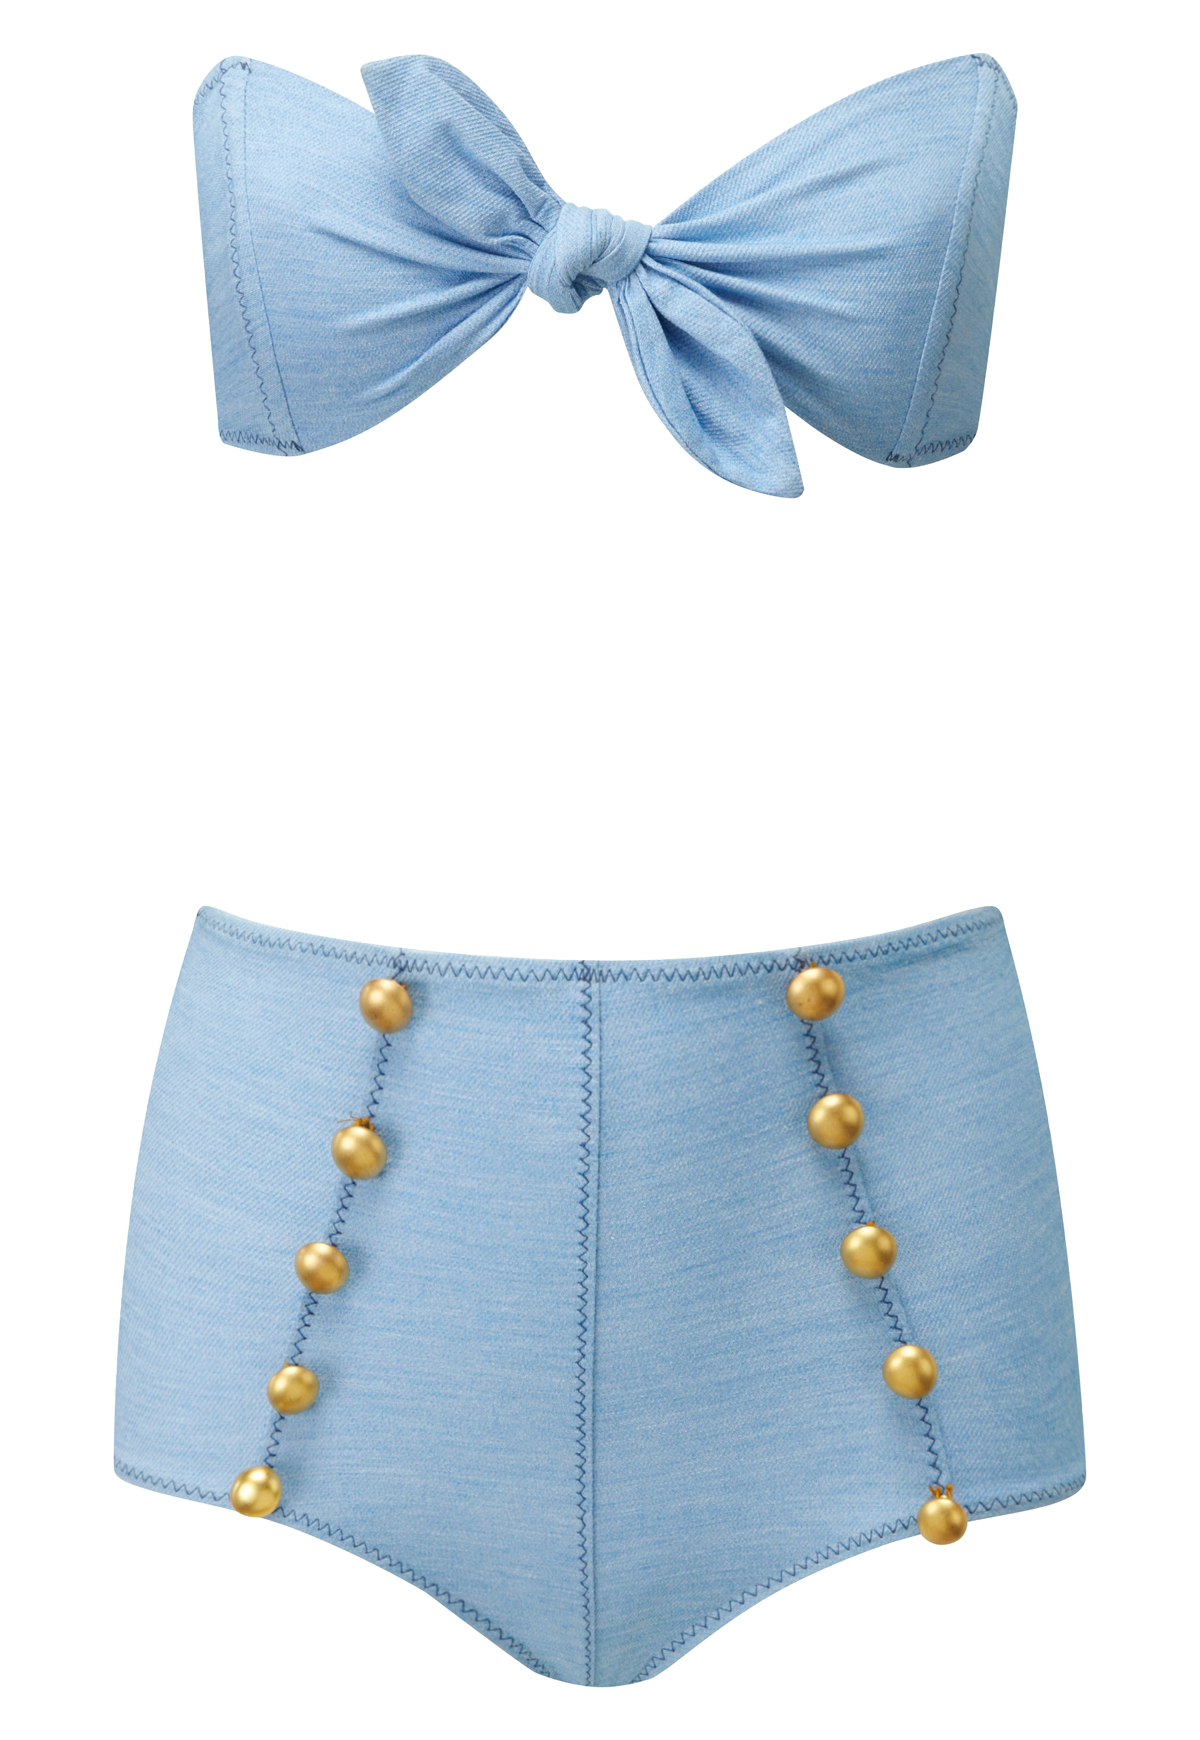 POPPY FADED DENIM HIGH-WAIST BUTTON BIKINI